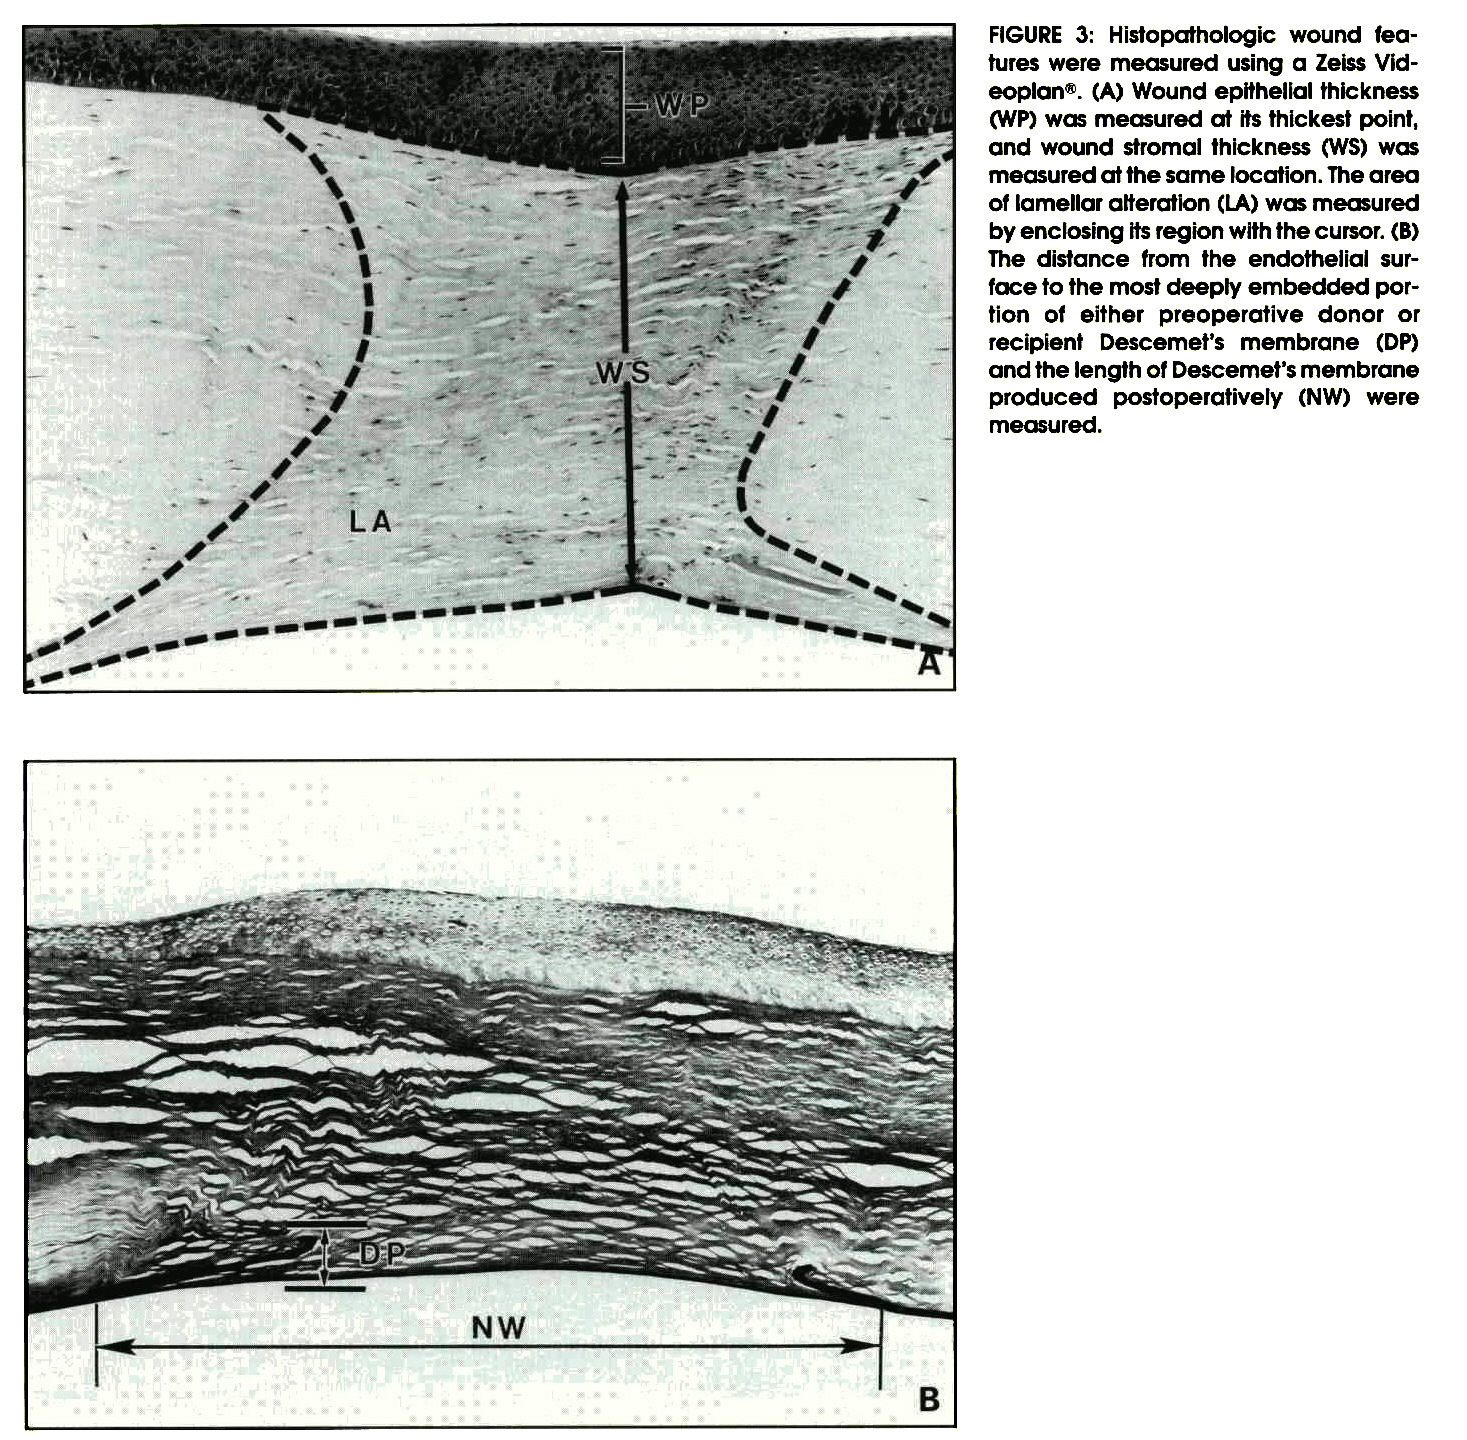 FIGURE 3: Histopathologic wound features were measured using a Zeiss Videoplan®. (A) Wound epithelial thickness (WP) was measured at its thickest point, and wound stromal thickness (WS) was measured at the same location. The area of lamellar alteration (LA) was measured by enclosing its region with the cursor. (B) The distance from the endothelial surface fo fhe most deeply embedded portion of either preoperative donor or recipient Descemet's membrane (DP) and the length of Descemet's membrane produced postoperatively (NW) were measured.